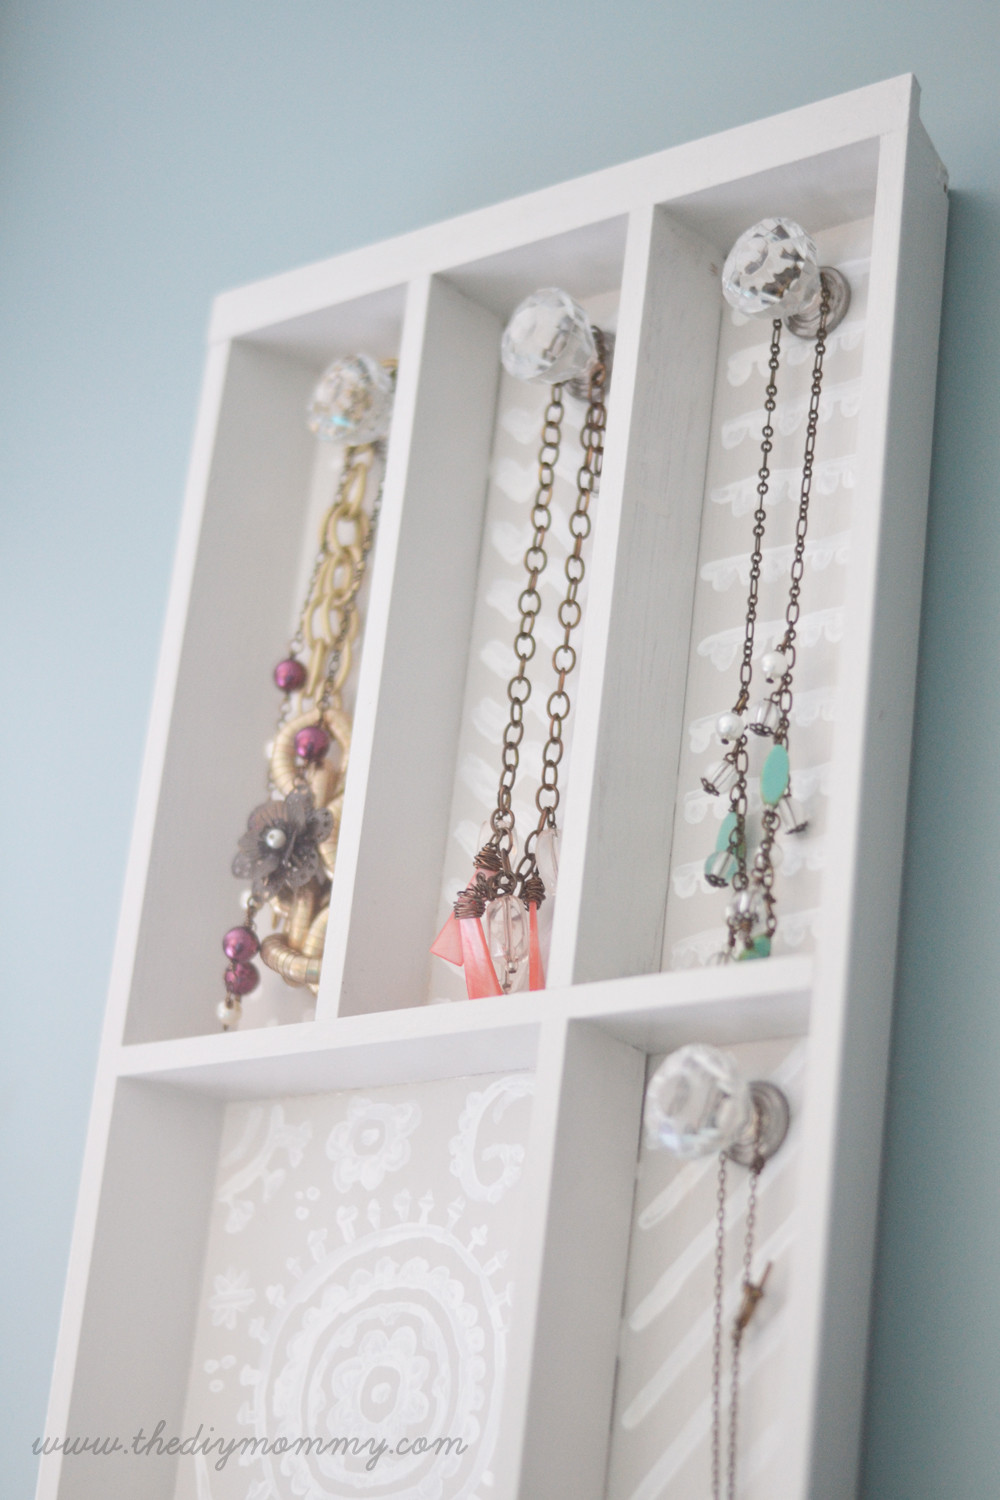 Best ideas about DIY Necklace Holder . Save or Pin Make a Jewelry Holder from a Cutlery Tray Now.